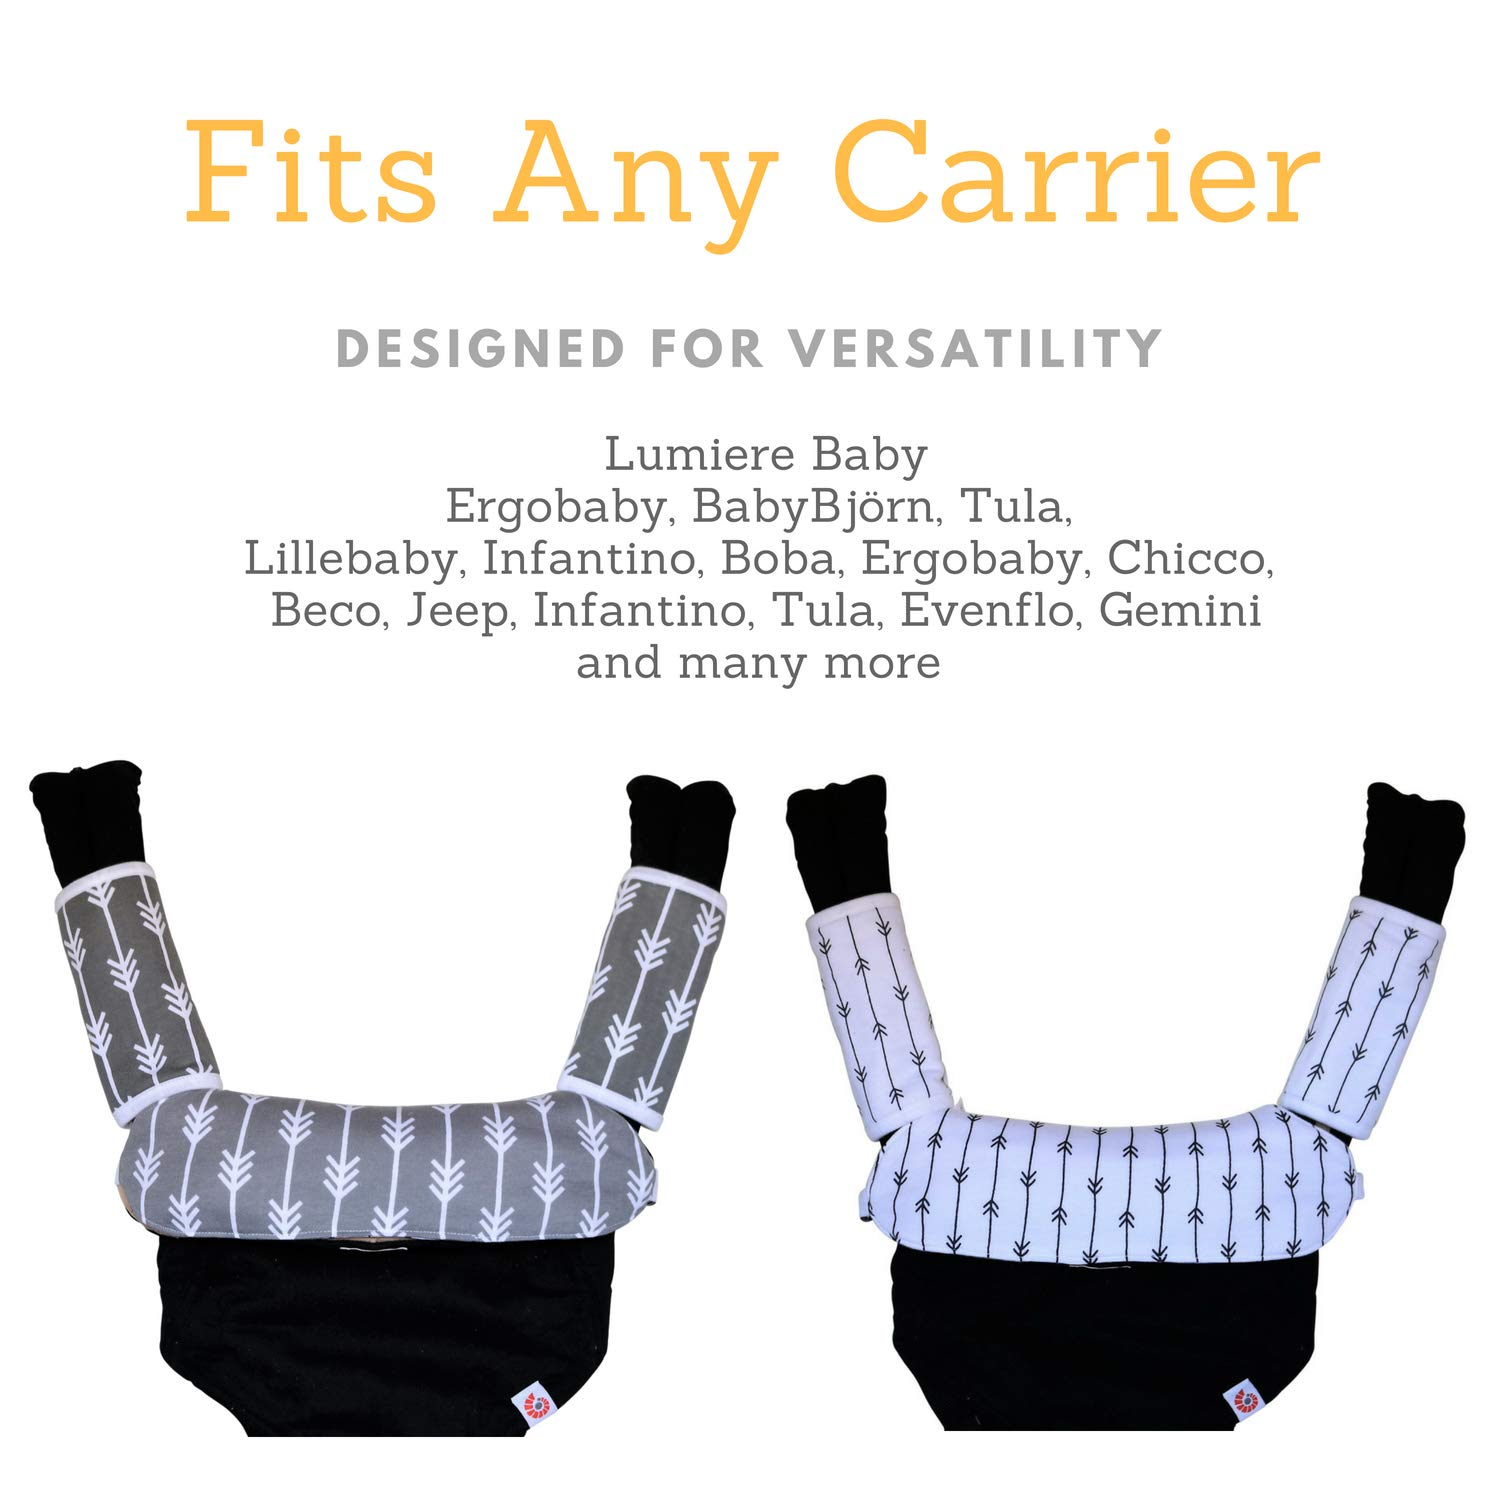 Baby Carrier Reversible Teething Drool Pads: Set of 3 Organic Cotton Bib Pad Strap Covers | Fit Ergo Babybjorn Infantino Any Baby Carriers | High Absorbent | Unisex Design | [Patent Pending] Lumiere Baby DP100GW